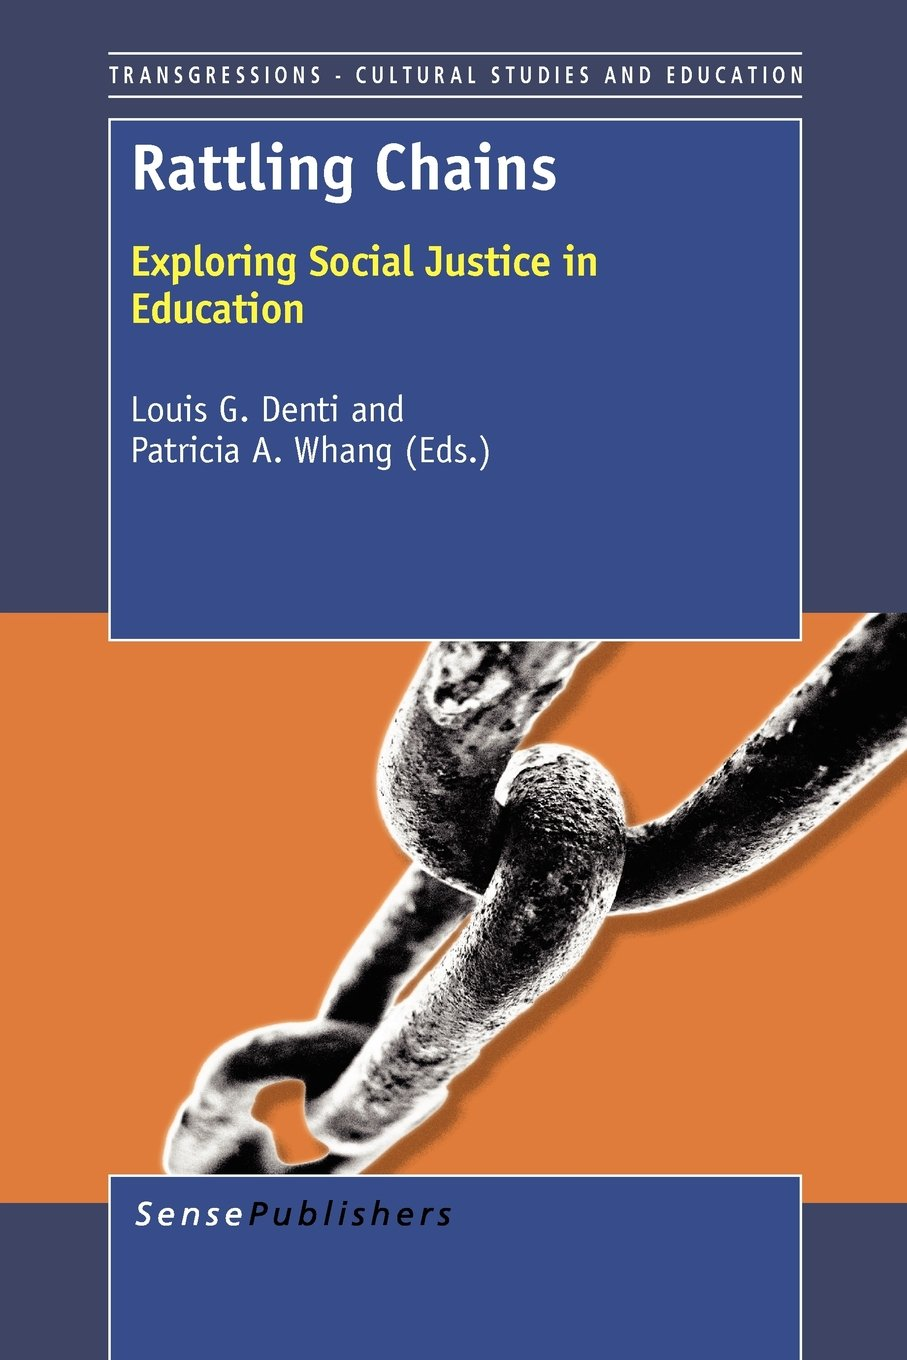 Read Online Rattling Chains: Exploring Social Justice in Education (Transgressions: Cultural Studies and Education) ebook